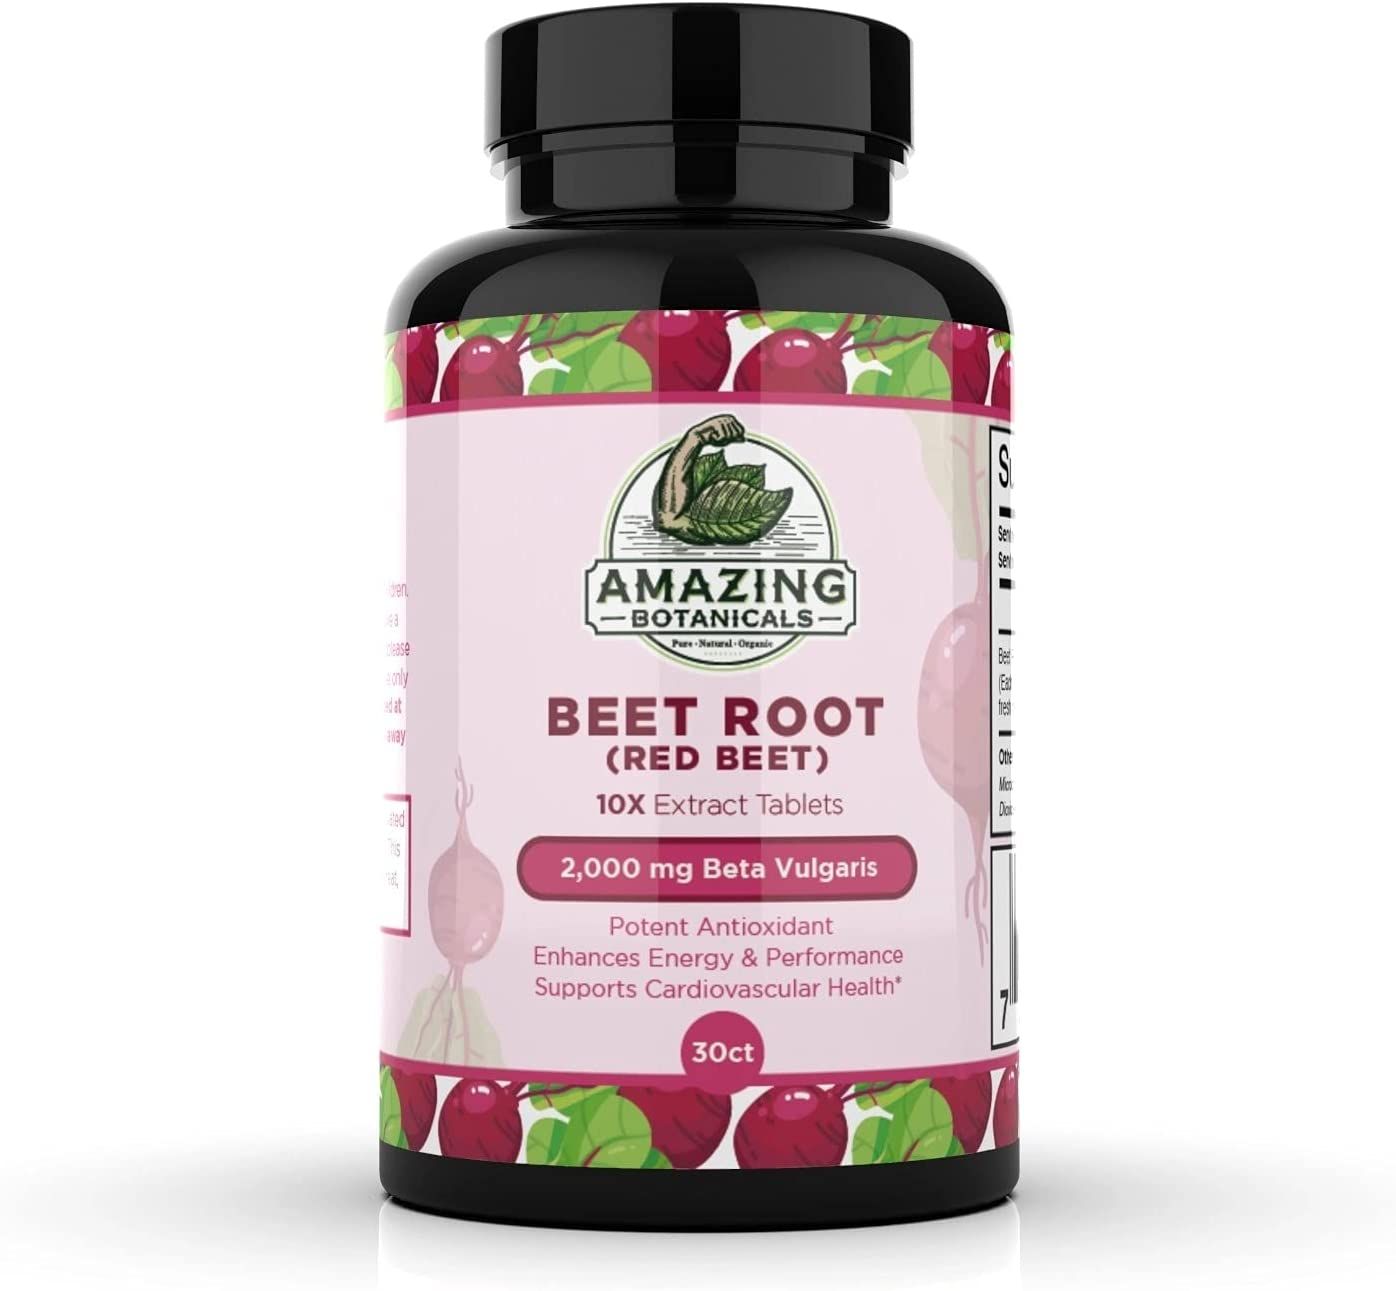 Beetroot 10X Extract All items in the store Tablets mg 000 Challenge the lowest price 30ct 2